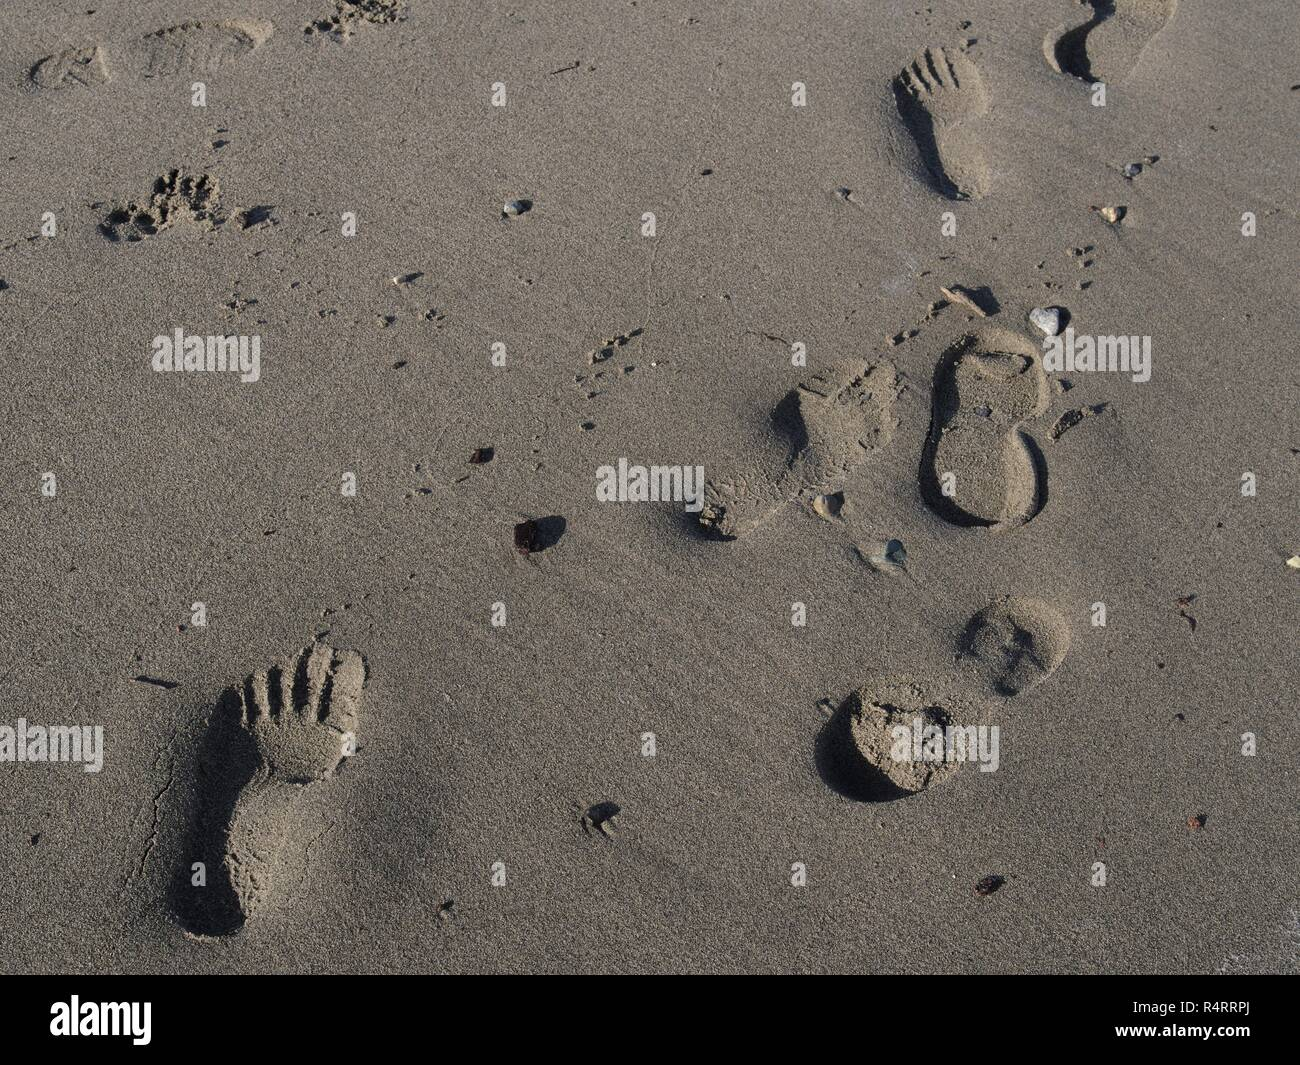 Footprints in sandy beach, Spanish Banks Beach, Vancouver, British Columbia, Canada, Brian Martin RMSF, large file size - Stock Image